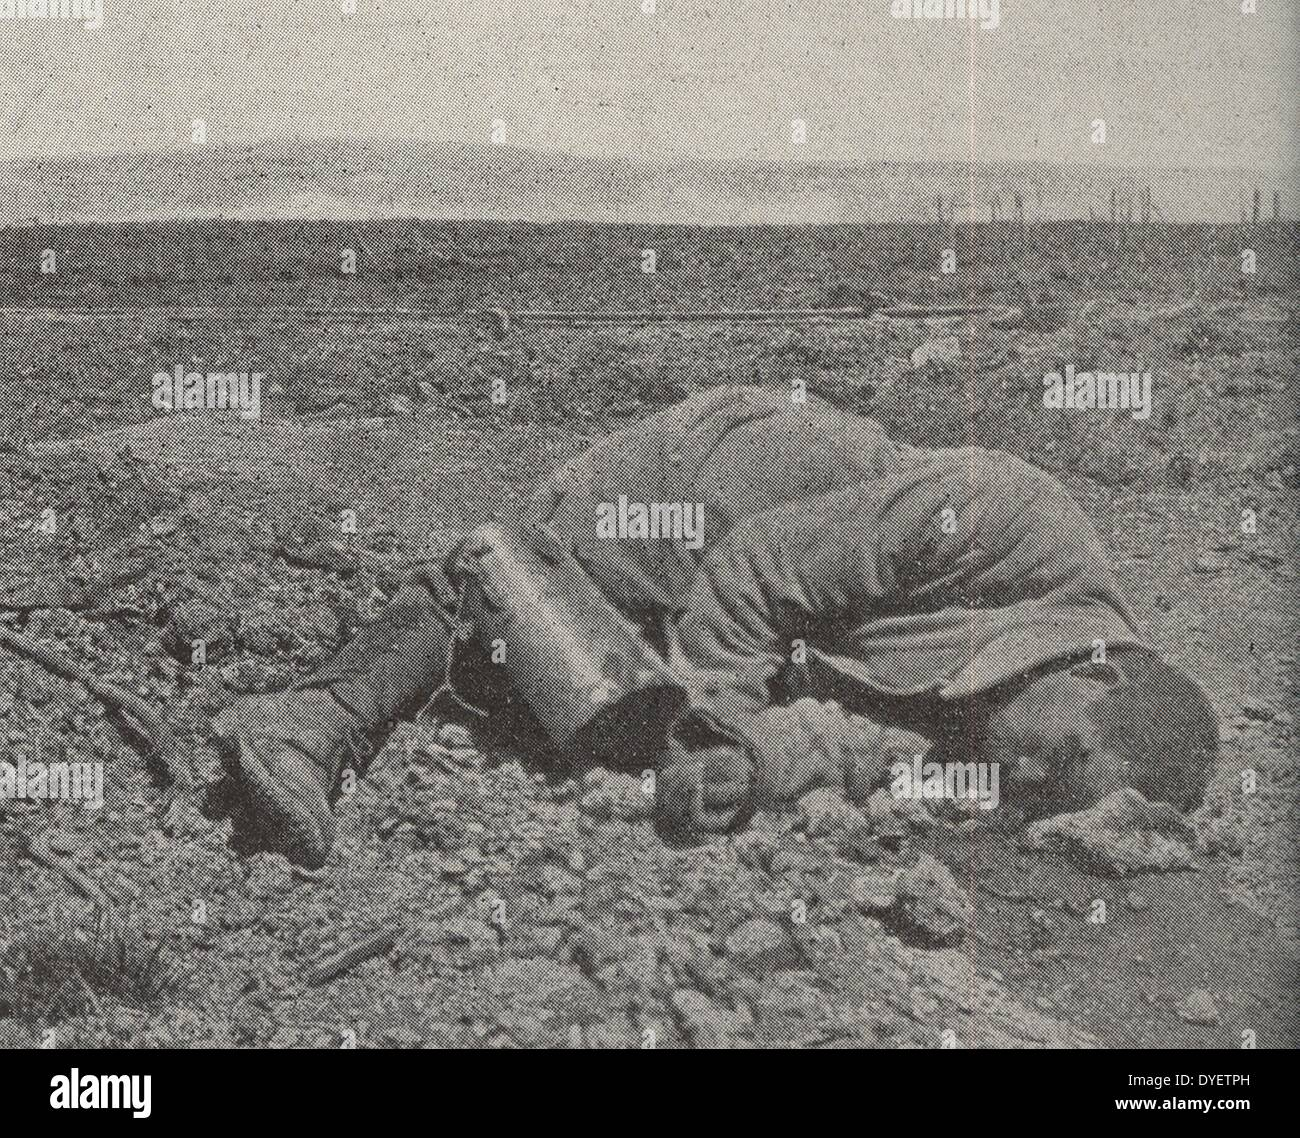 a French soldier killed in battle at Fleury, France during World War One 1915 - Stock Image